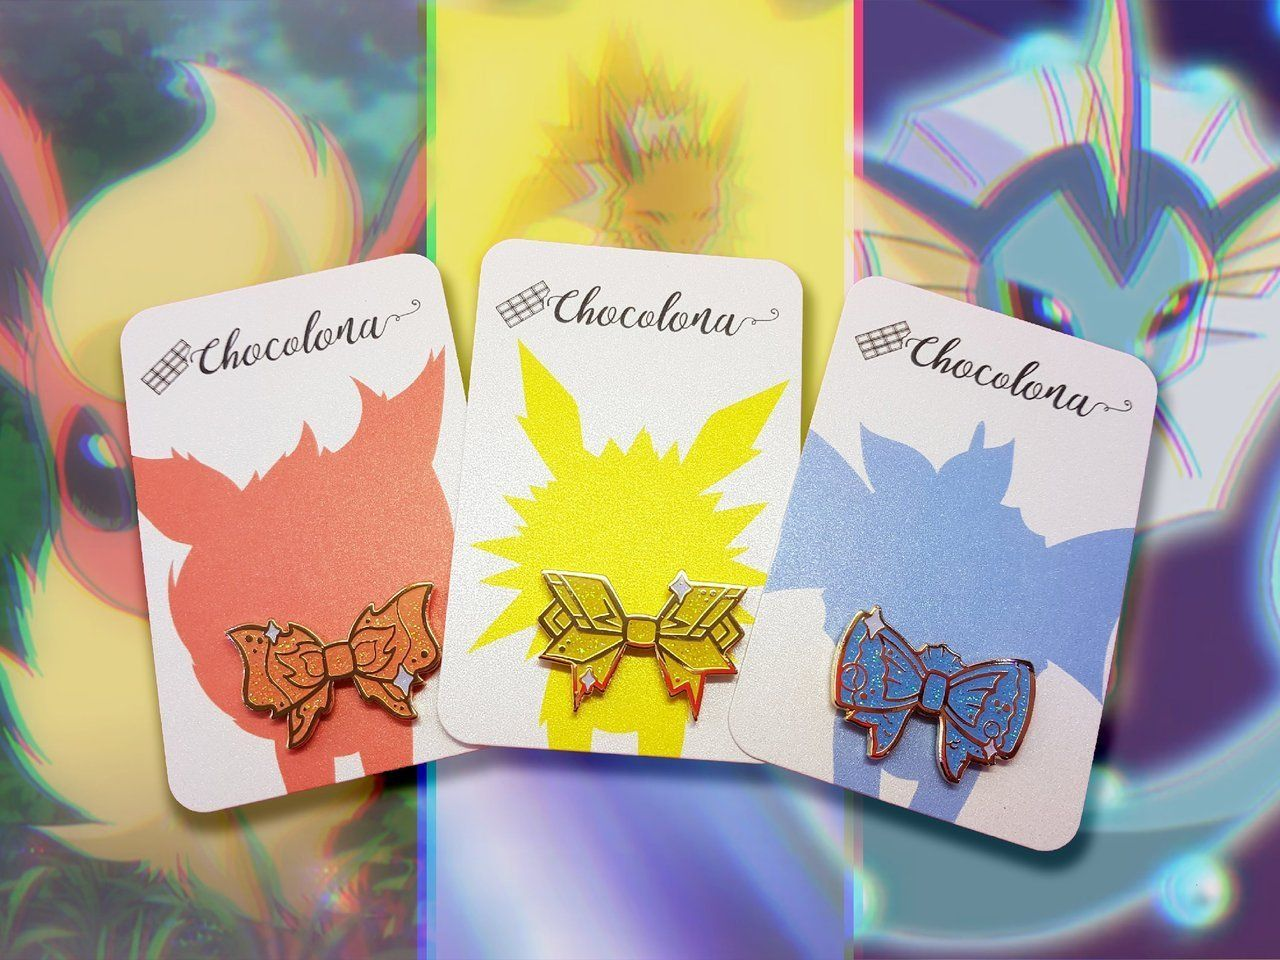 Eeveelution Bow Pins made by Chocolona